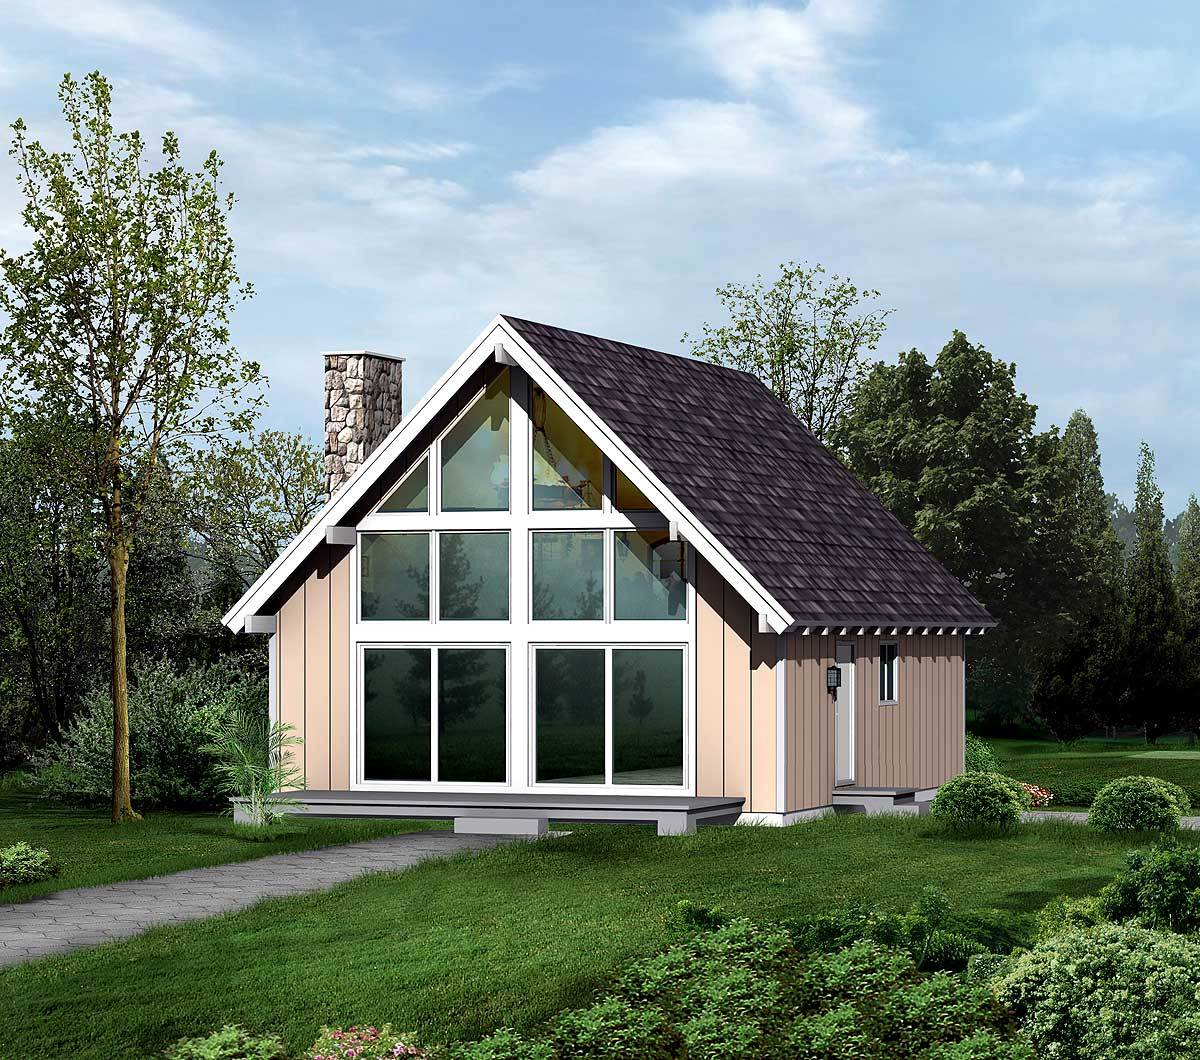 Cozy vacation retreat 57194ha architectural designs - Large summer houses energizing retreat ...